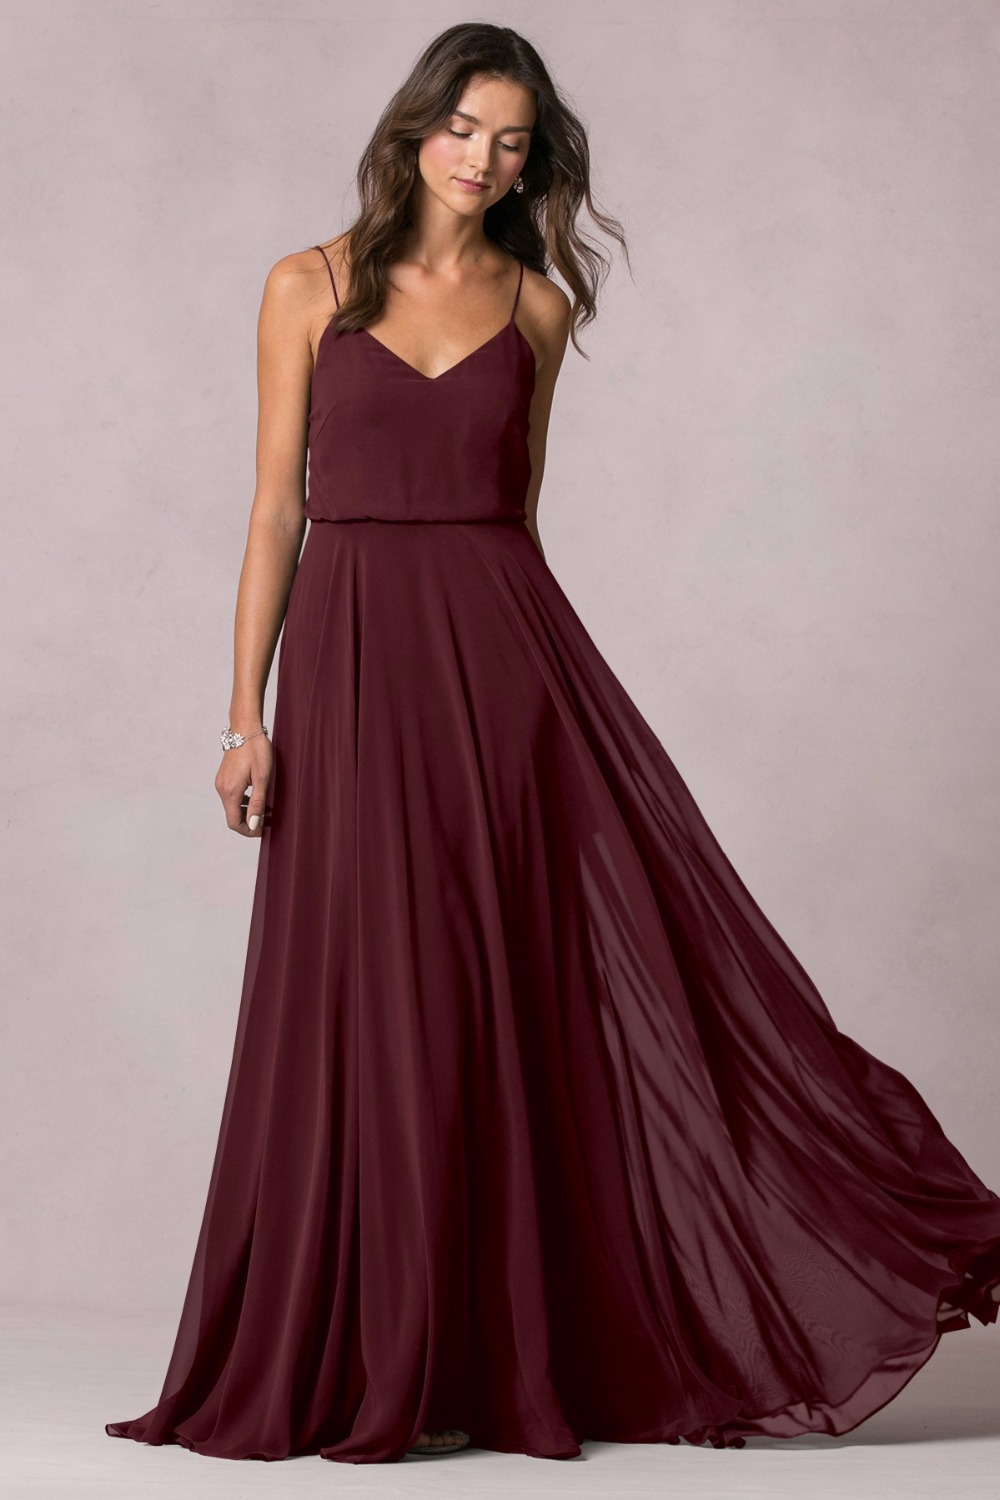 Online buy wholesale bridesmaid dresses burgundy from for Simple elegant wedding dress designers